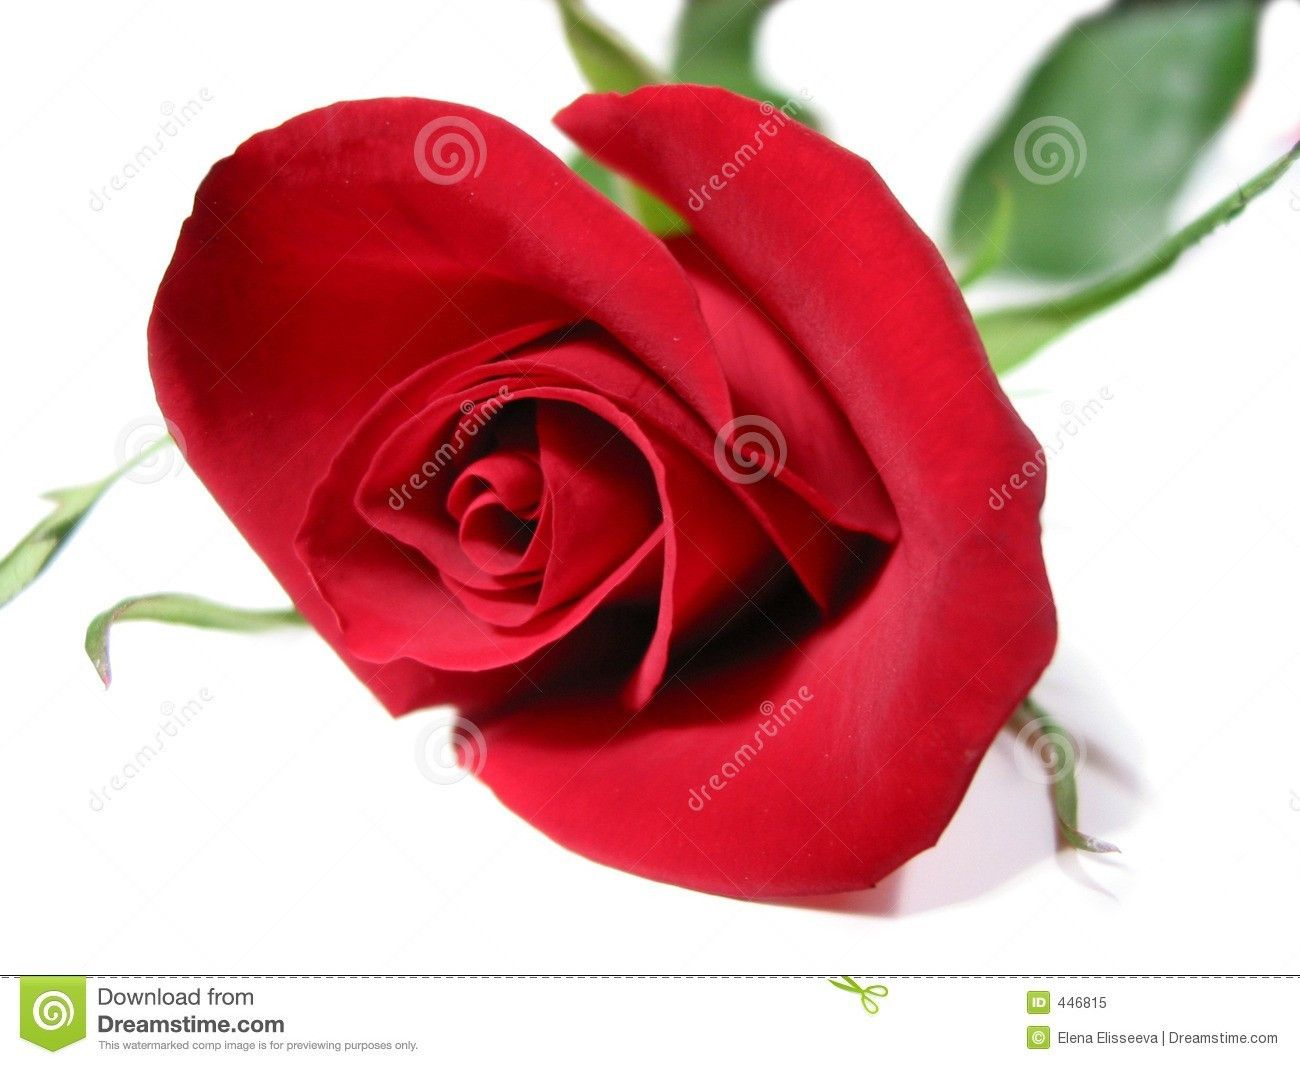 vase with red roses of red and white rose photos luxury luxury lsa flower colour bud vase throughout red and white rose photos fresh red rose flower wallpapers inspirational https s media cache ak0